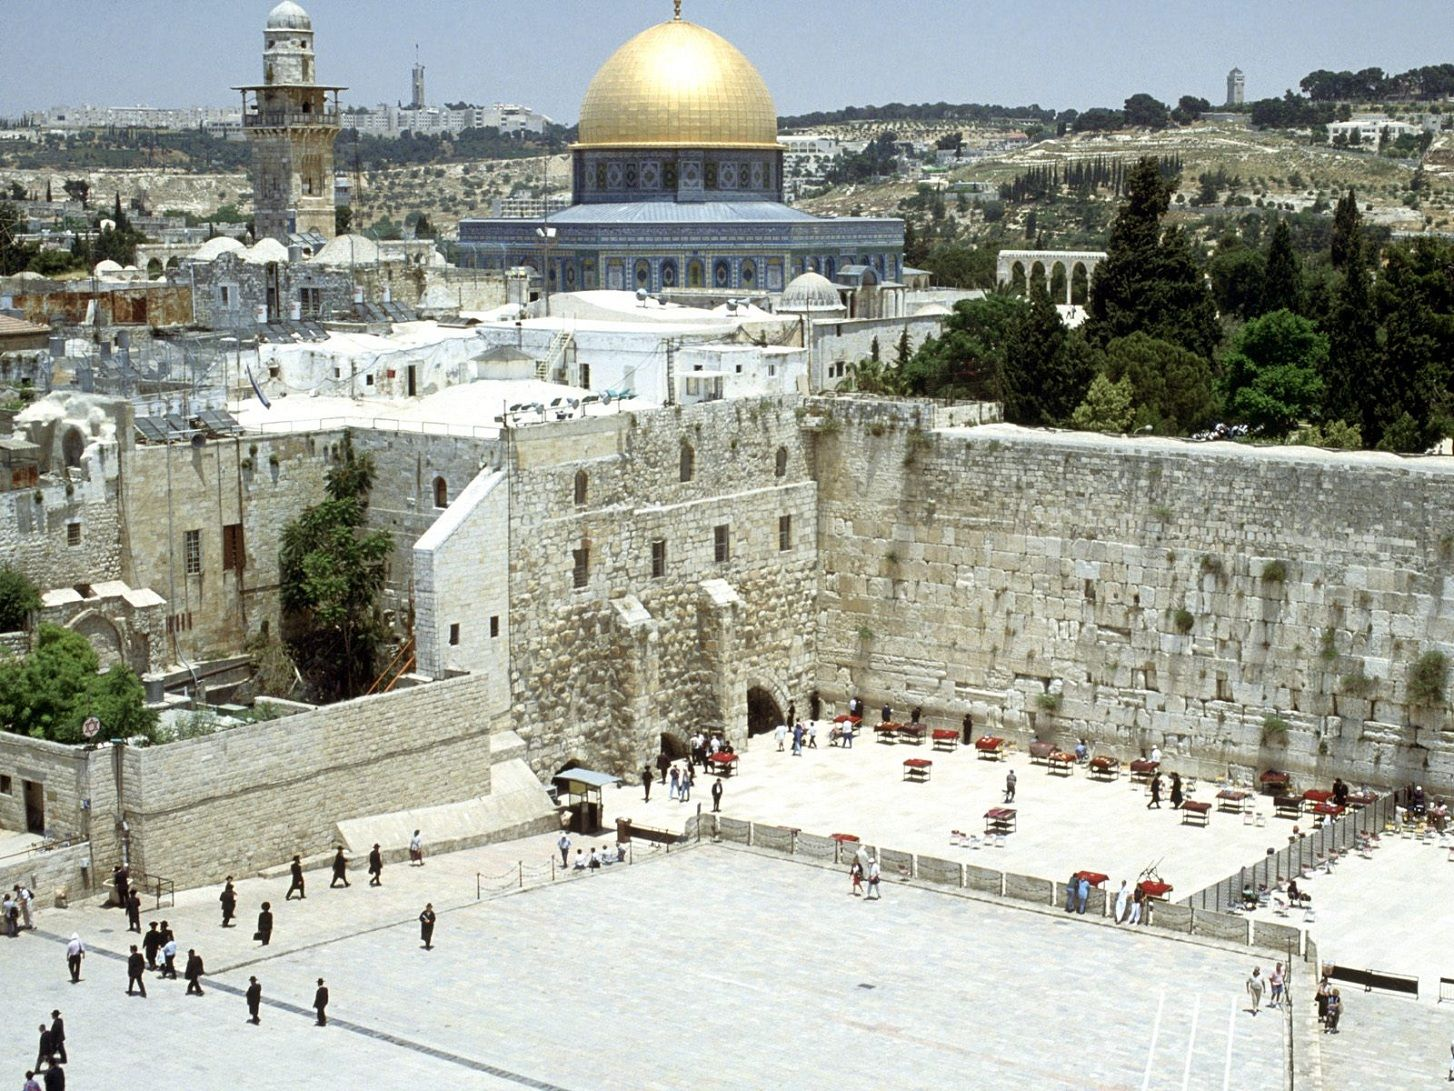 Jerusalem, Israel. Land of my birth. Land that mesmerizes me, that I miss, that I love. I'll come back one day.